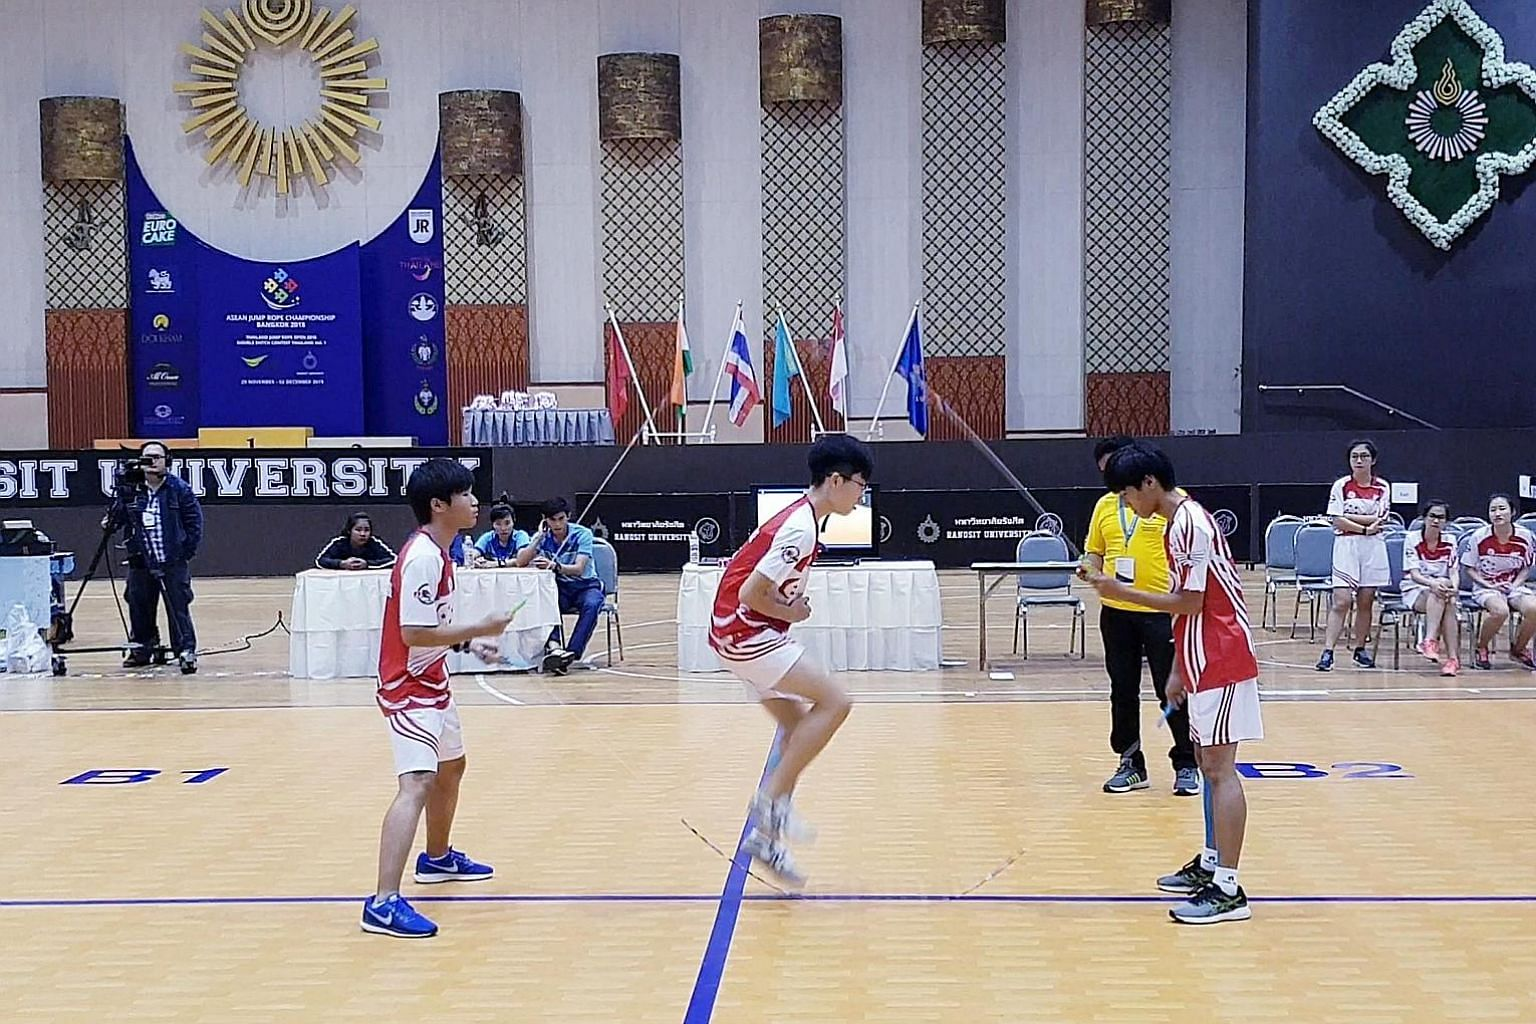 From left: Chelson Loh, Henry He and Jowell Nim were part of a Singapore team of rope-skipping athletes who hopped, skipped and jumped their way to a total of 17 golds, 19 silvers and 12 bronzes in three events - the Asean Jump Rope Championship, the